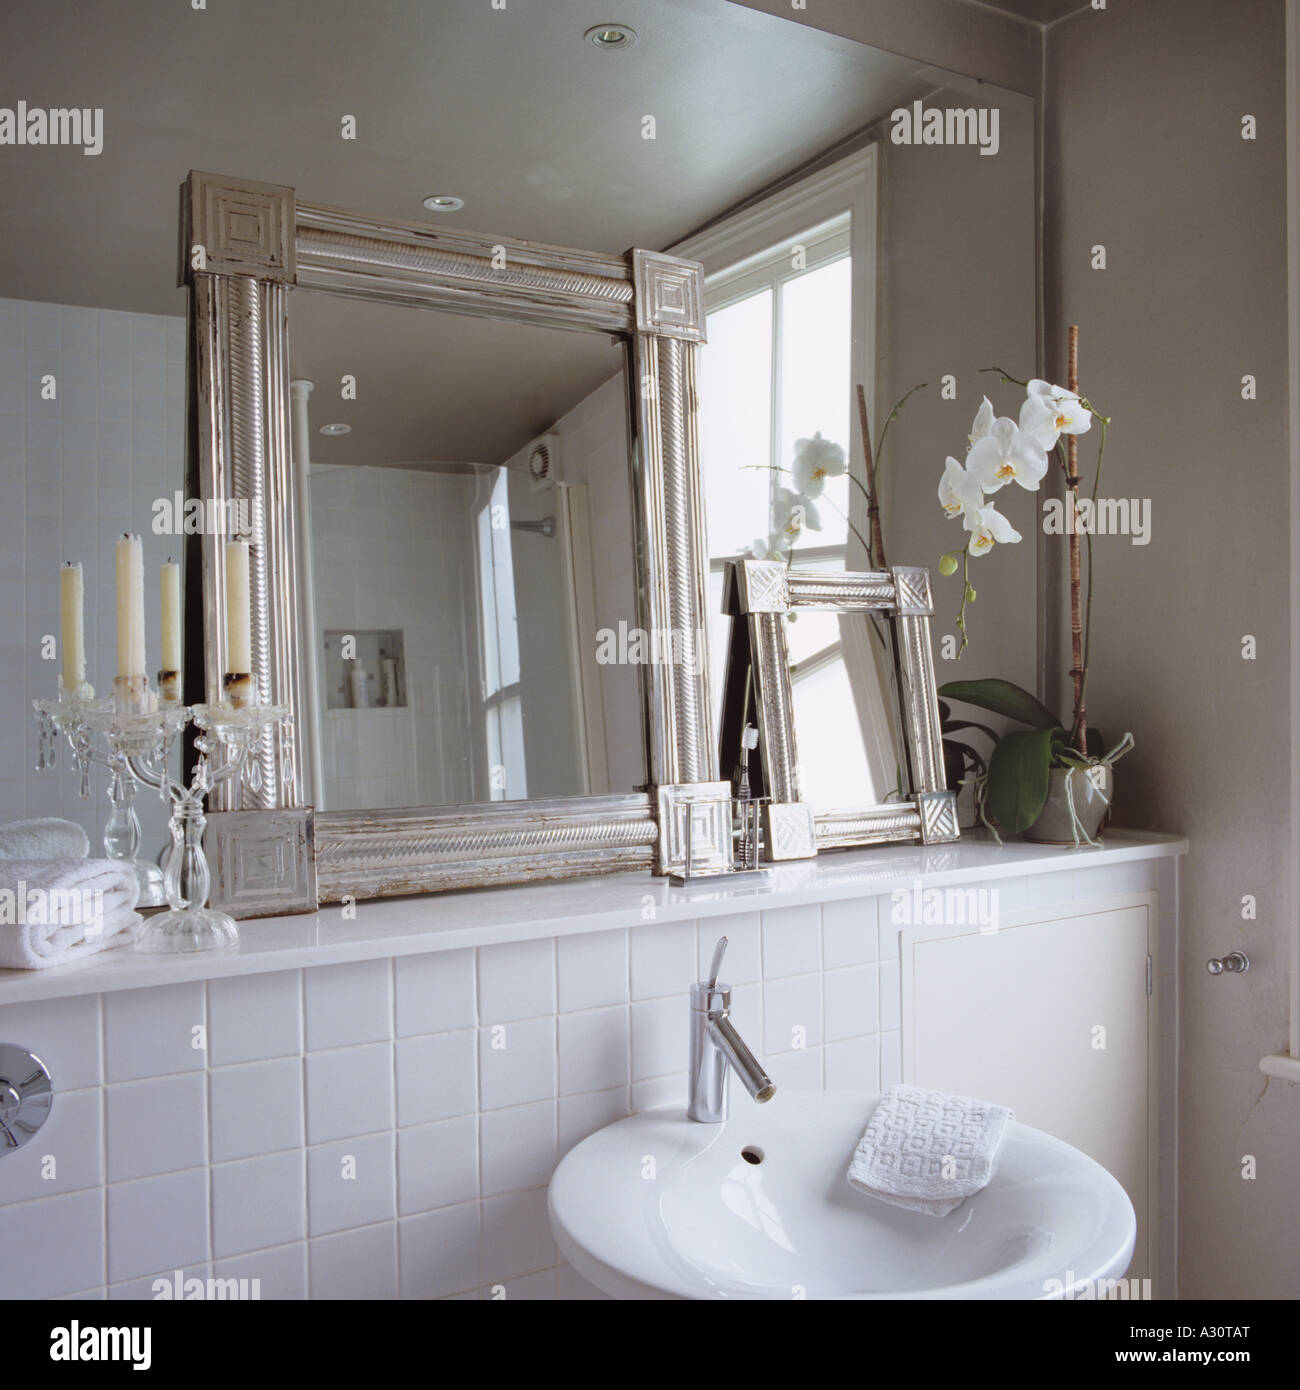 contemporary white bathroom with smaller framed mirrors leaning